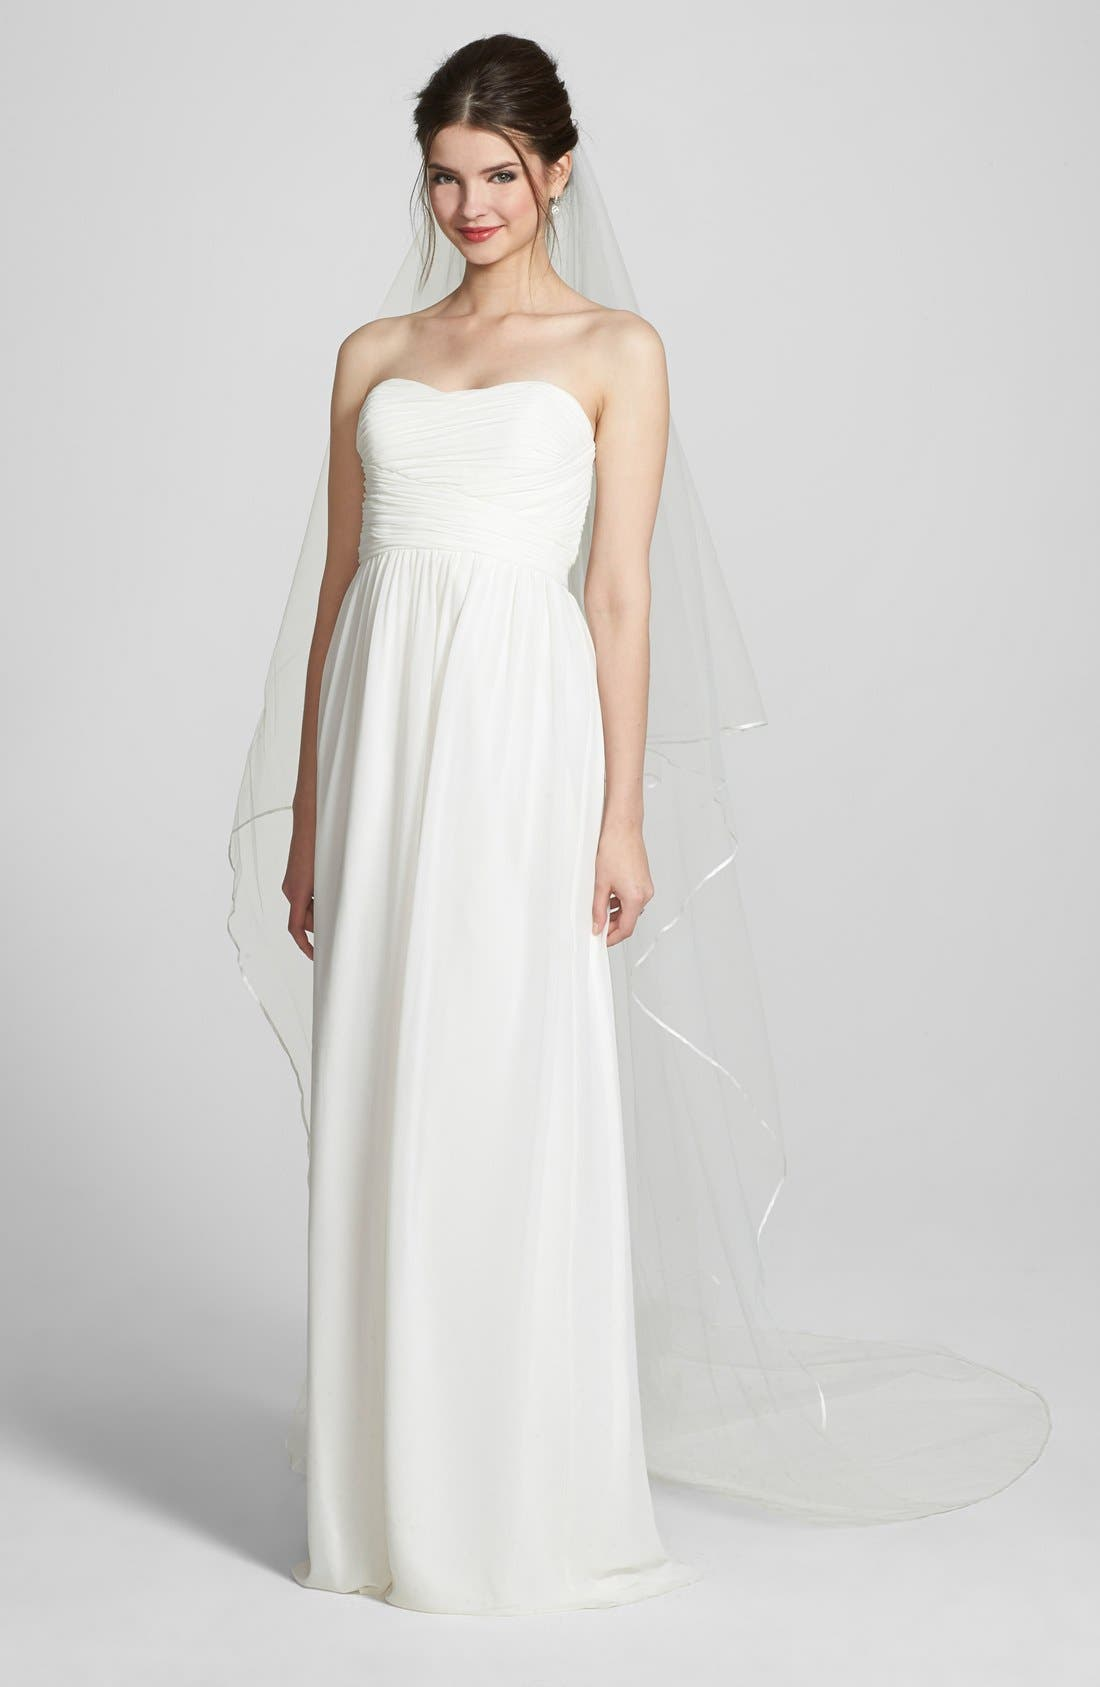 'Mable' Two-Tier Satin Trim Cathedral Veil,                             Main thumbnail 2, color,